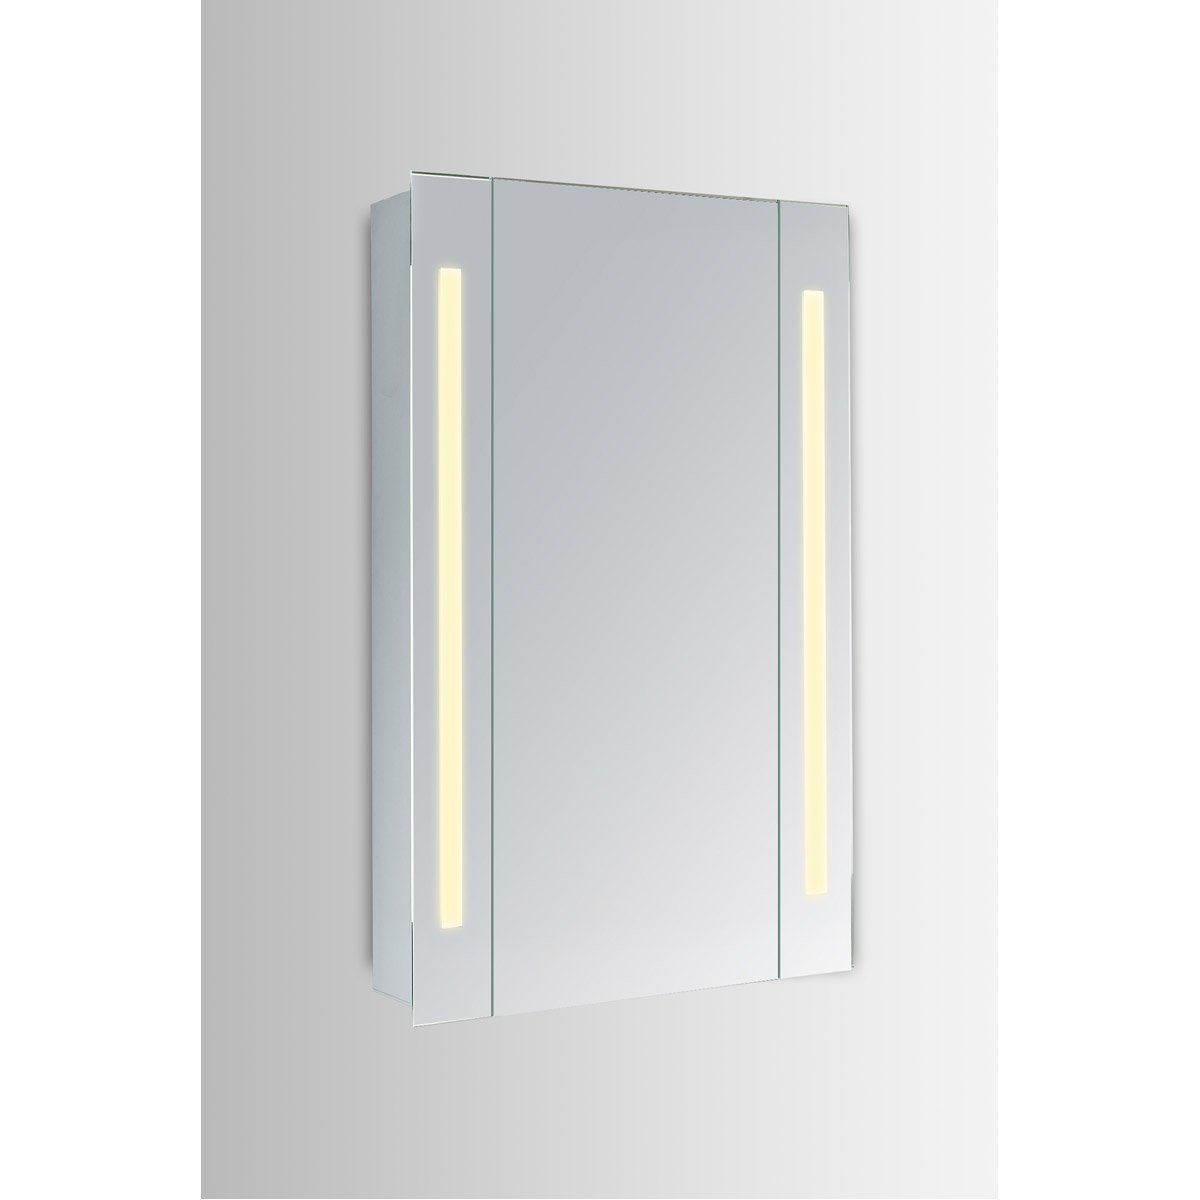 Elixir 27.5 X 19.5 Led Mirror Cabinet - Silver Finish (Mre8002) Led Cabinet